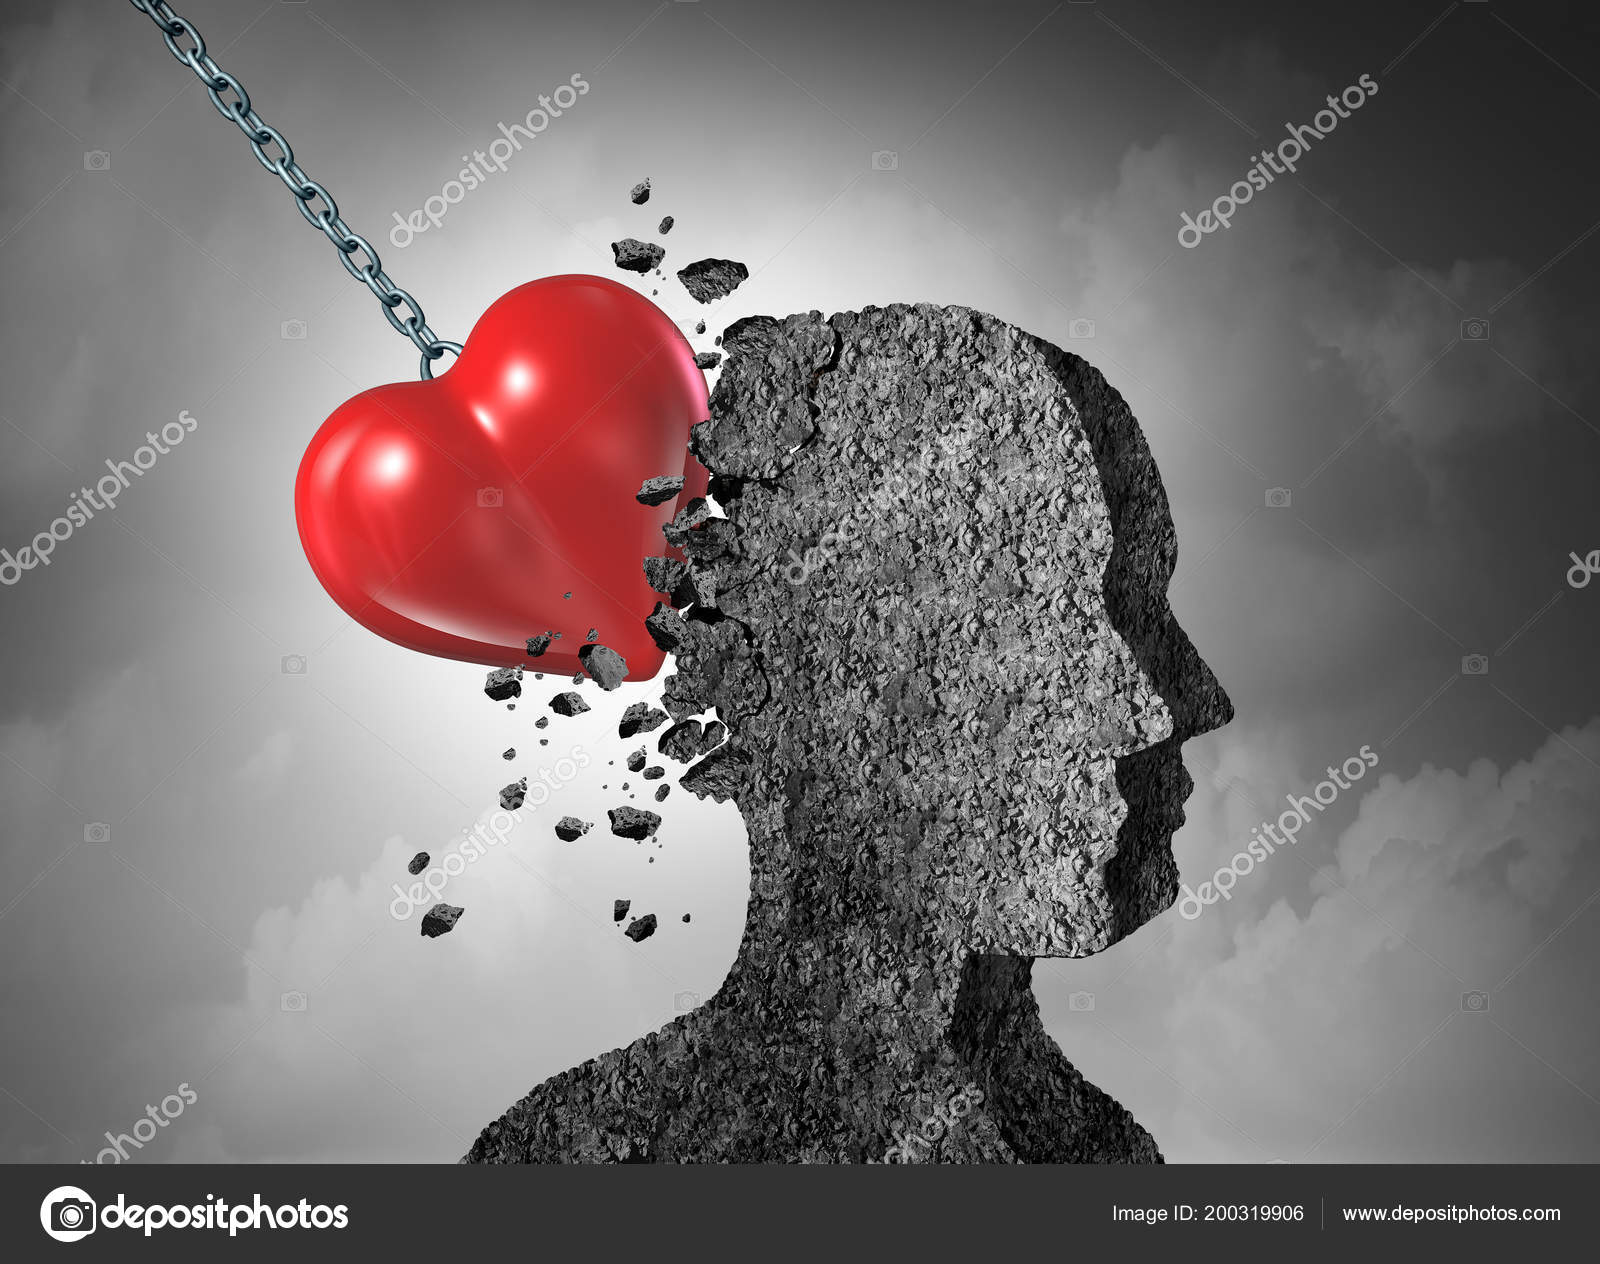 Pictures Painful Love Love Pain Broken Hearted Psychology Relationship Concept Illustration Stock Photo C Lightsource 200319906